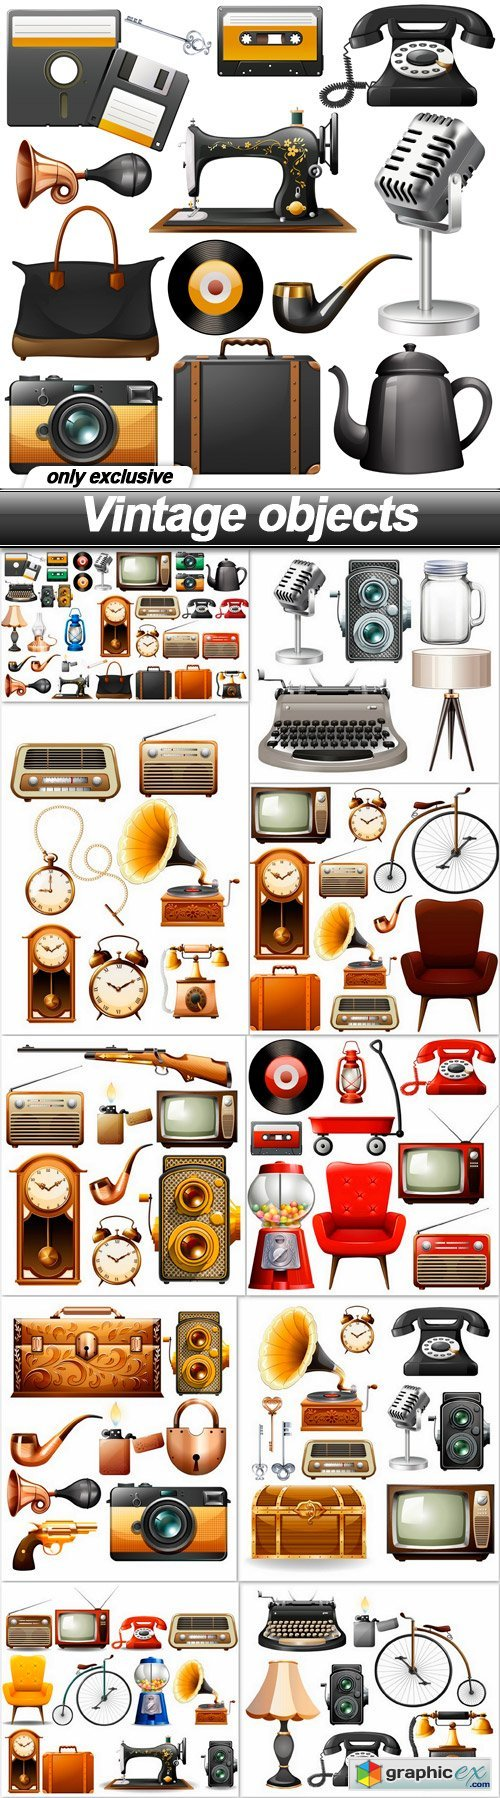 Vintage objects - 11 EPS